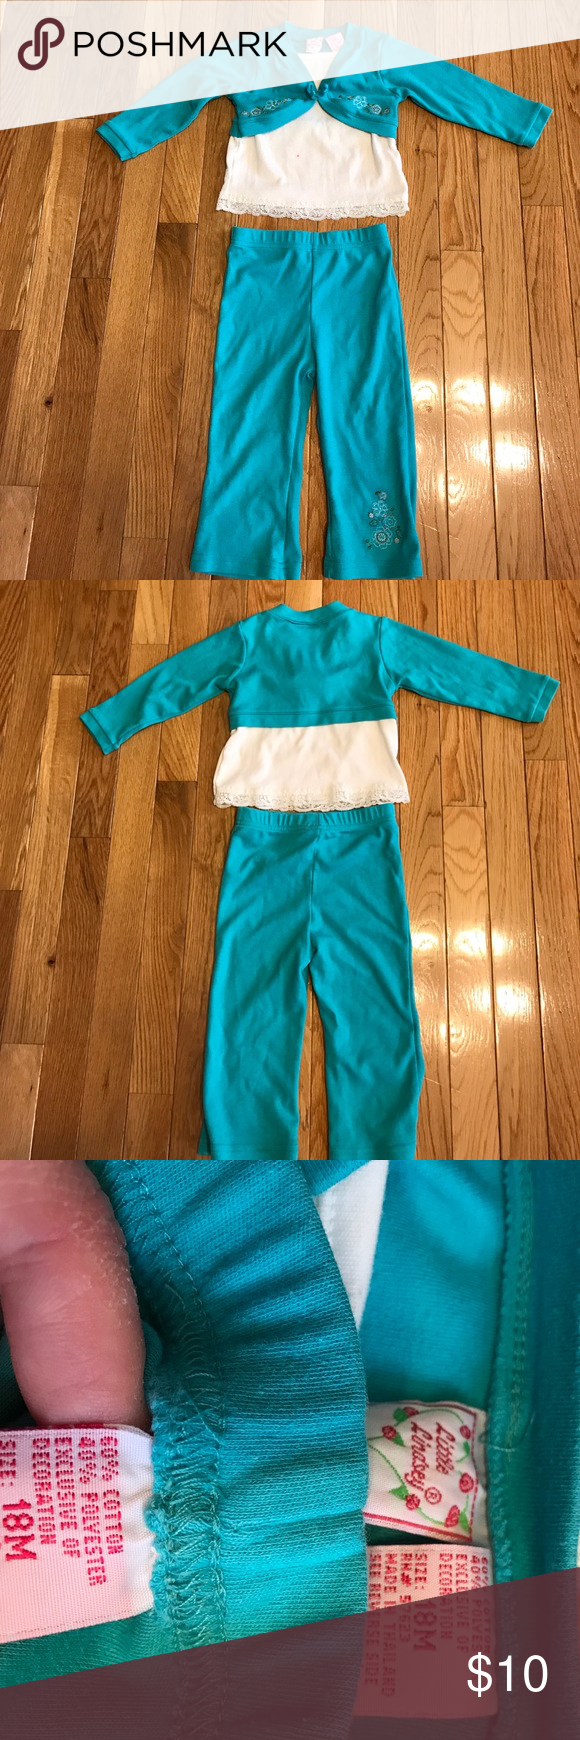 Little Lindsey girls aqua and white outfit 18M Little Lindsey girls aqua and white outfit size 18M. Does have a small red dot on front of shirt(pictured). Otherwise in great gently used condition, no rips or tears! little lindsey Matching Sets